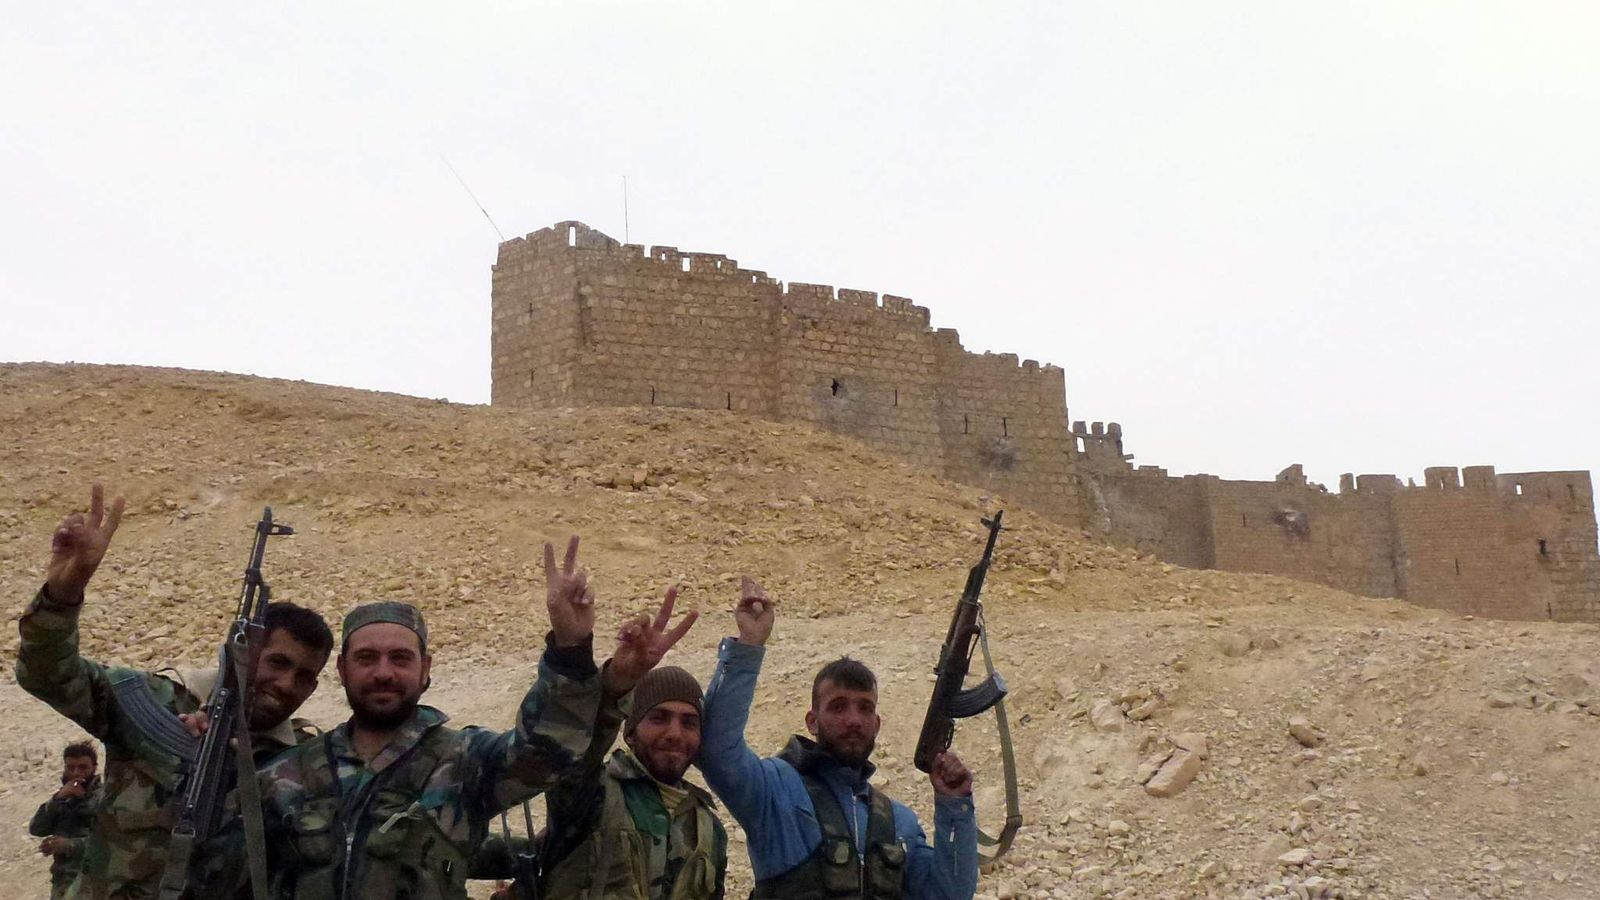 Syrian pro-government forces gesture next to the Palmyra citadel